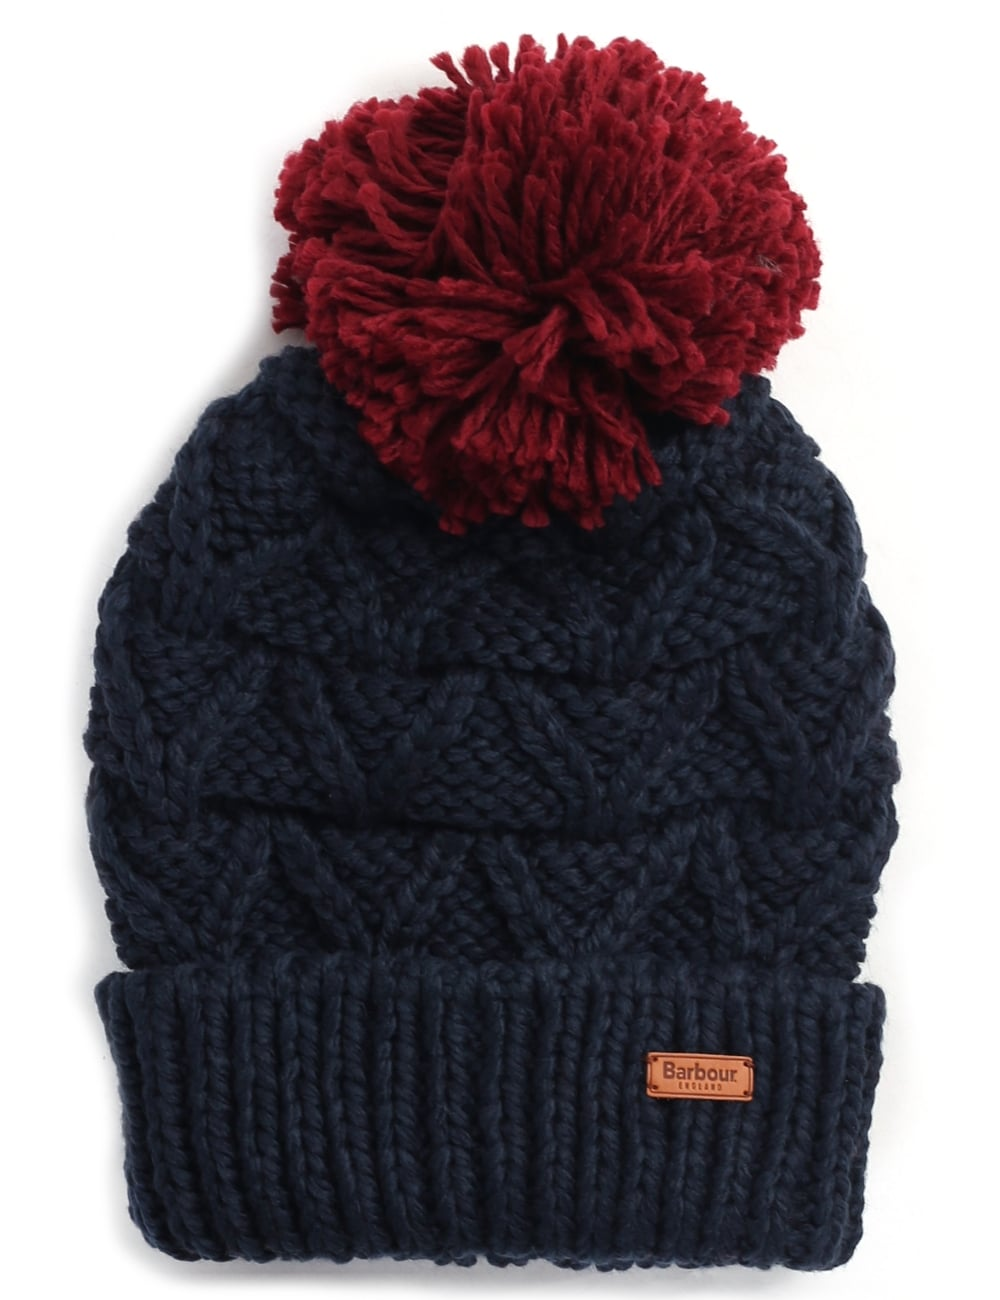 Barbour Women s Craigside Bobble Hat Navy Red 86792dc5cb2